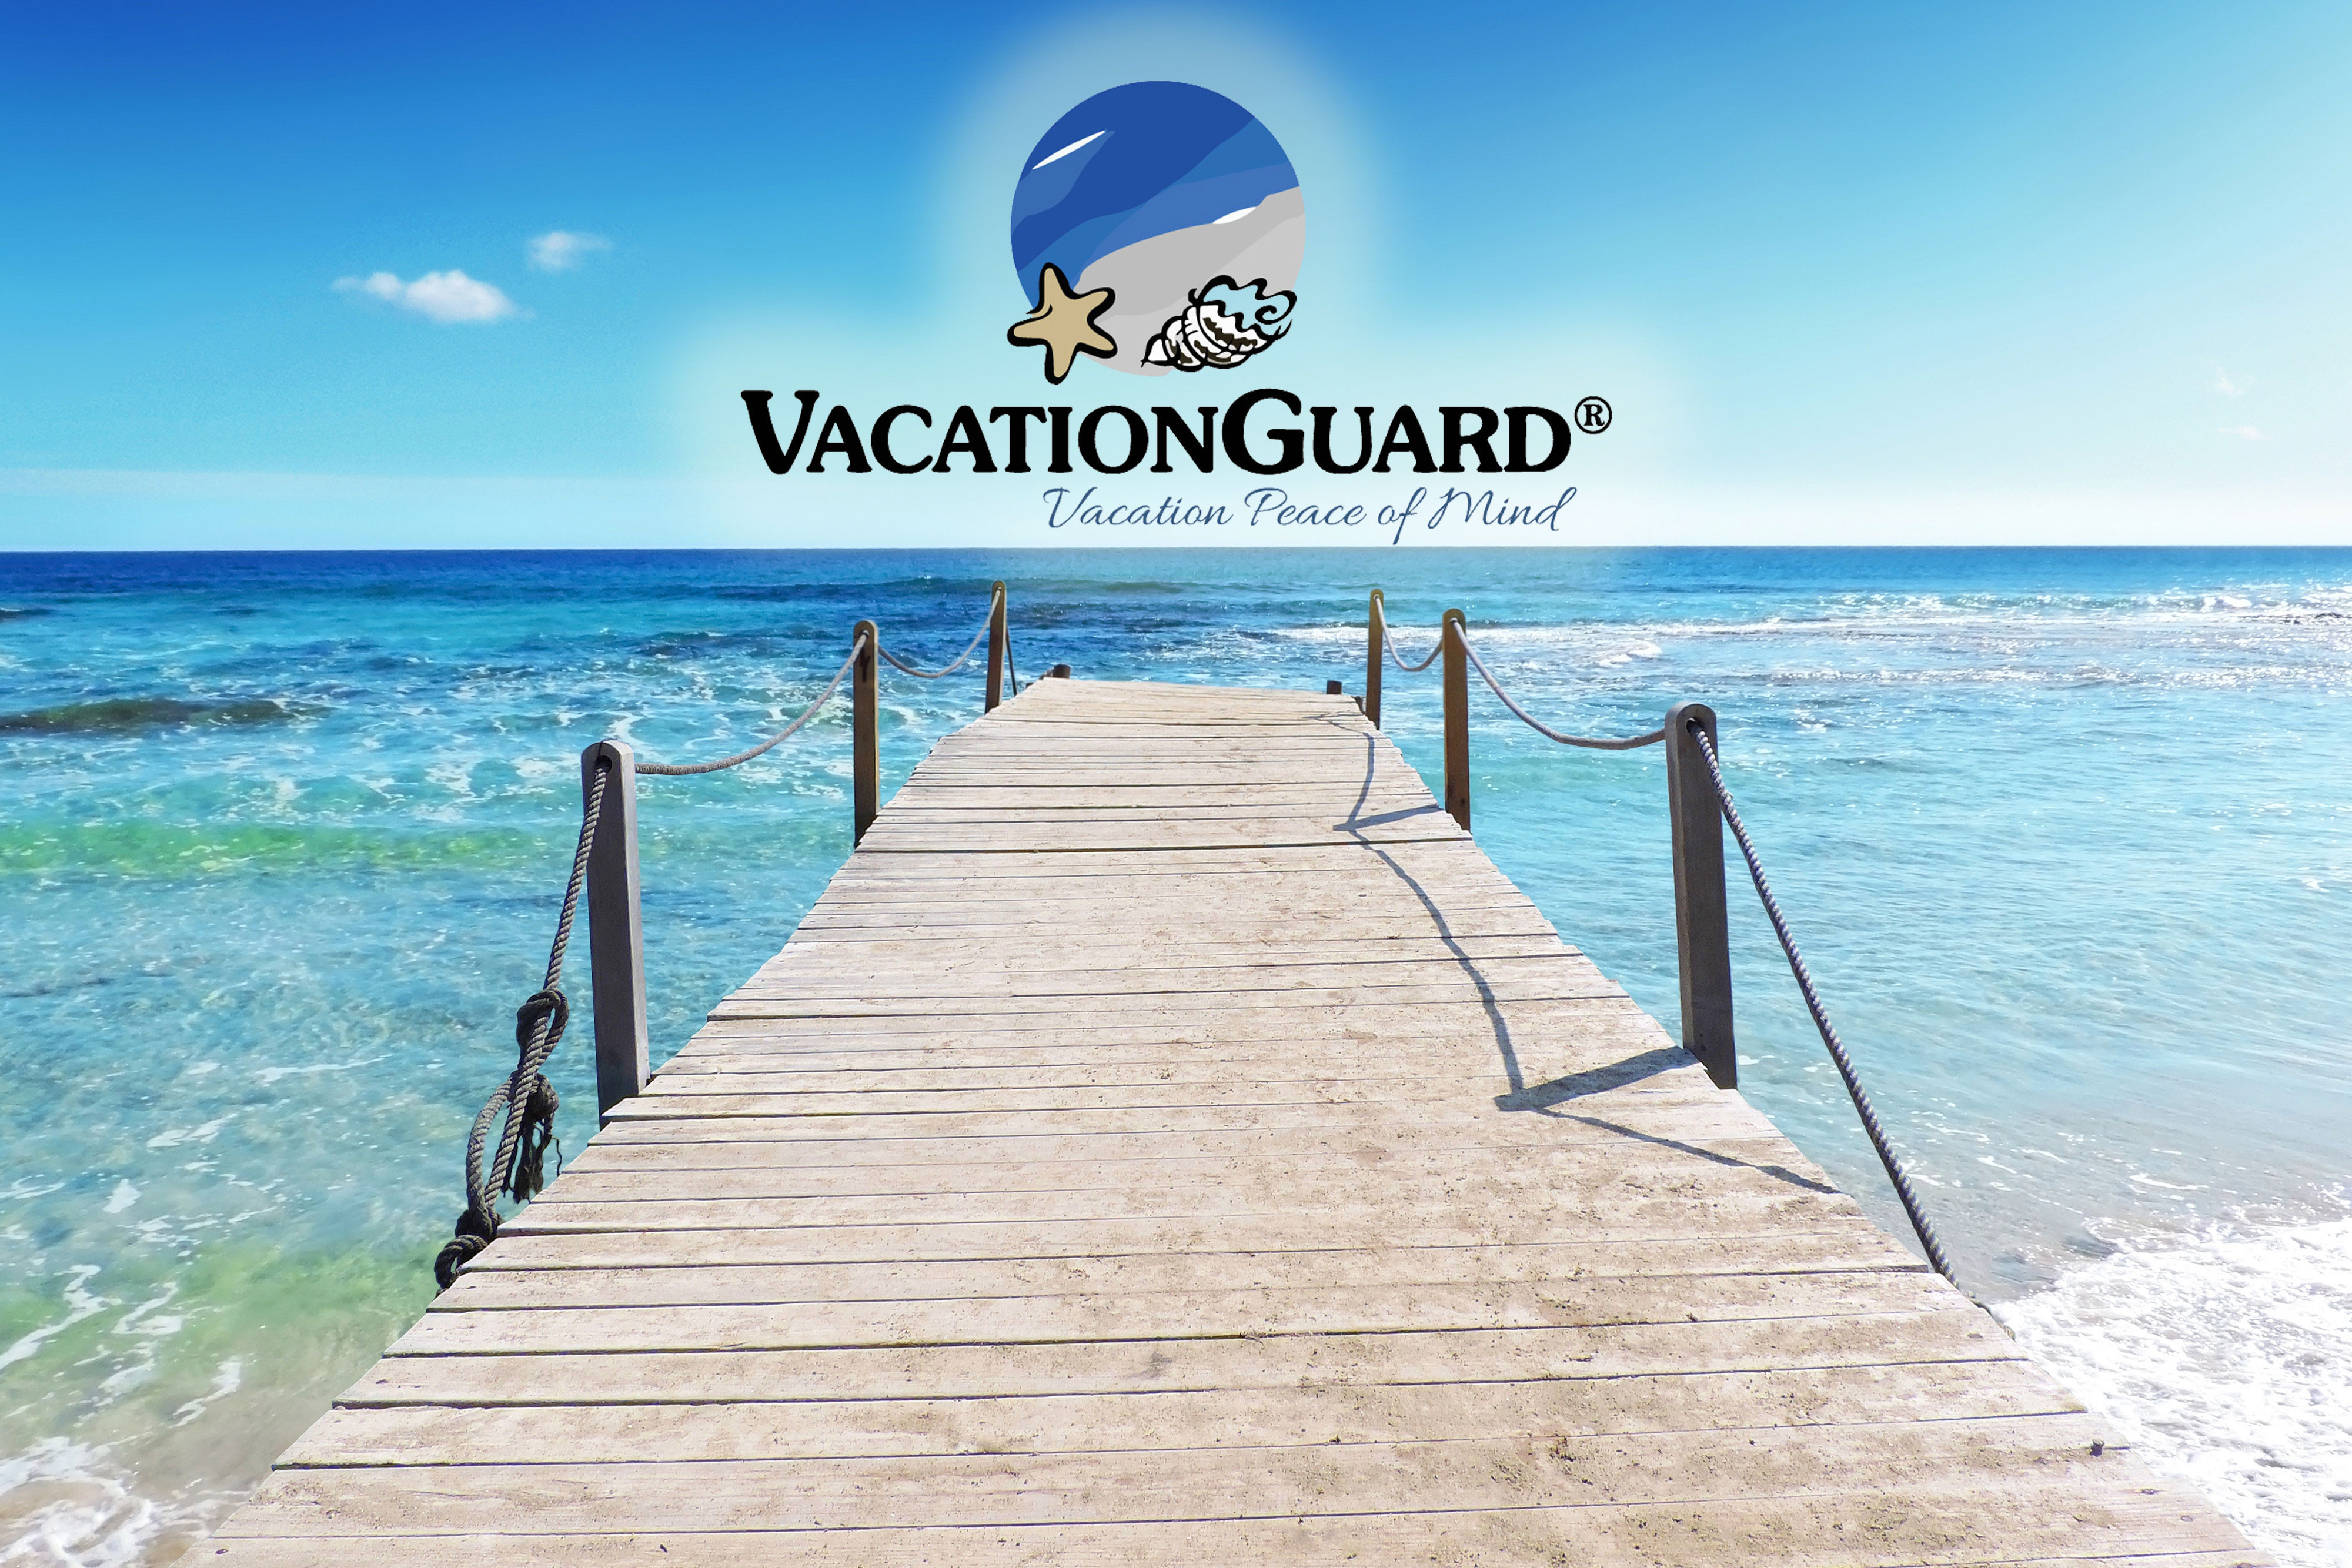 VacationGuard® is customized travel insurance to affordably help Owners and Guests protect their vacations. Enroll now in just 90 seconds.